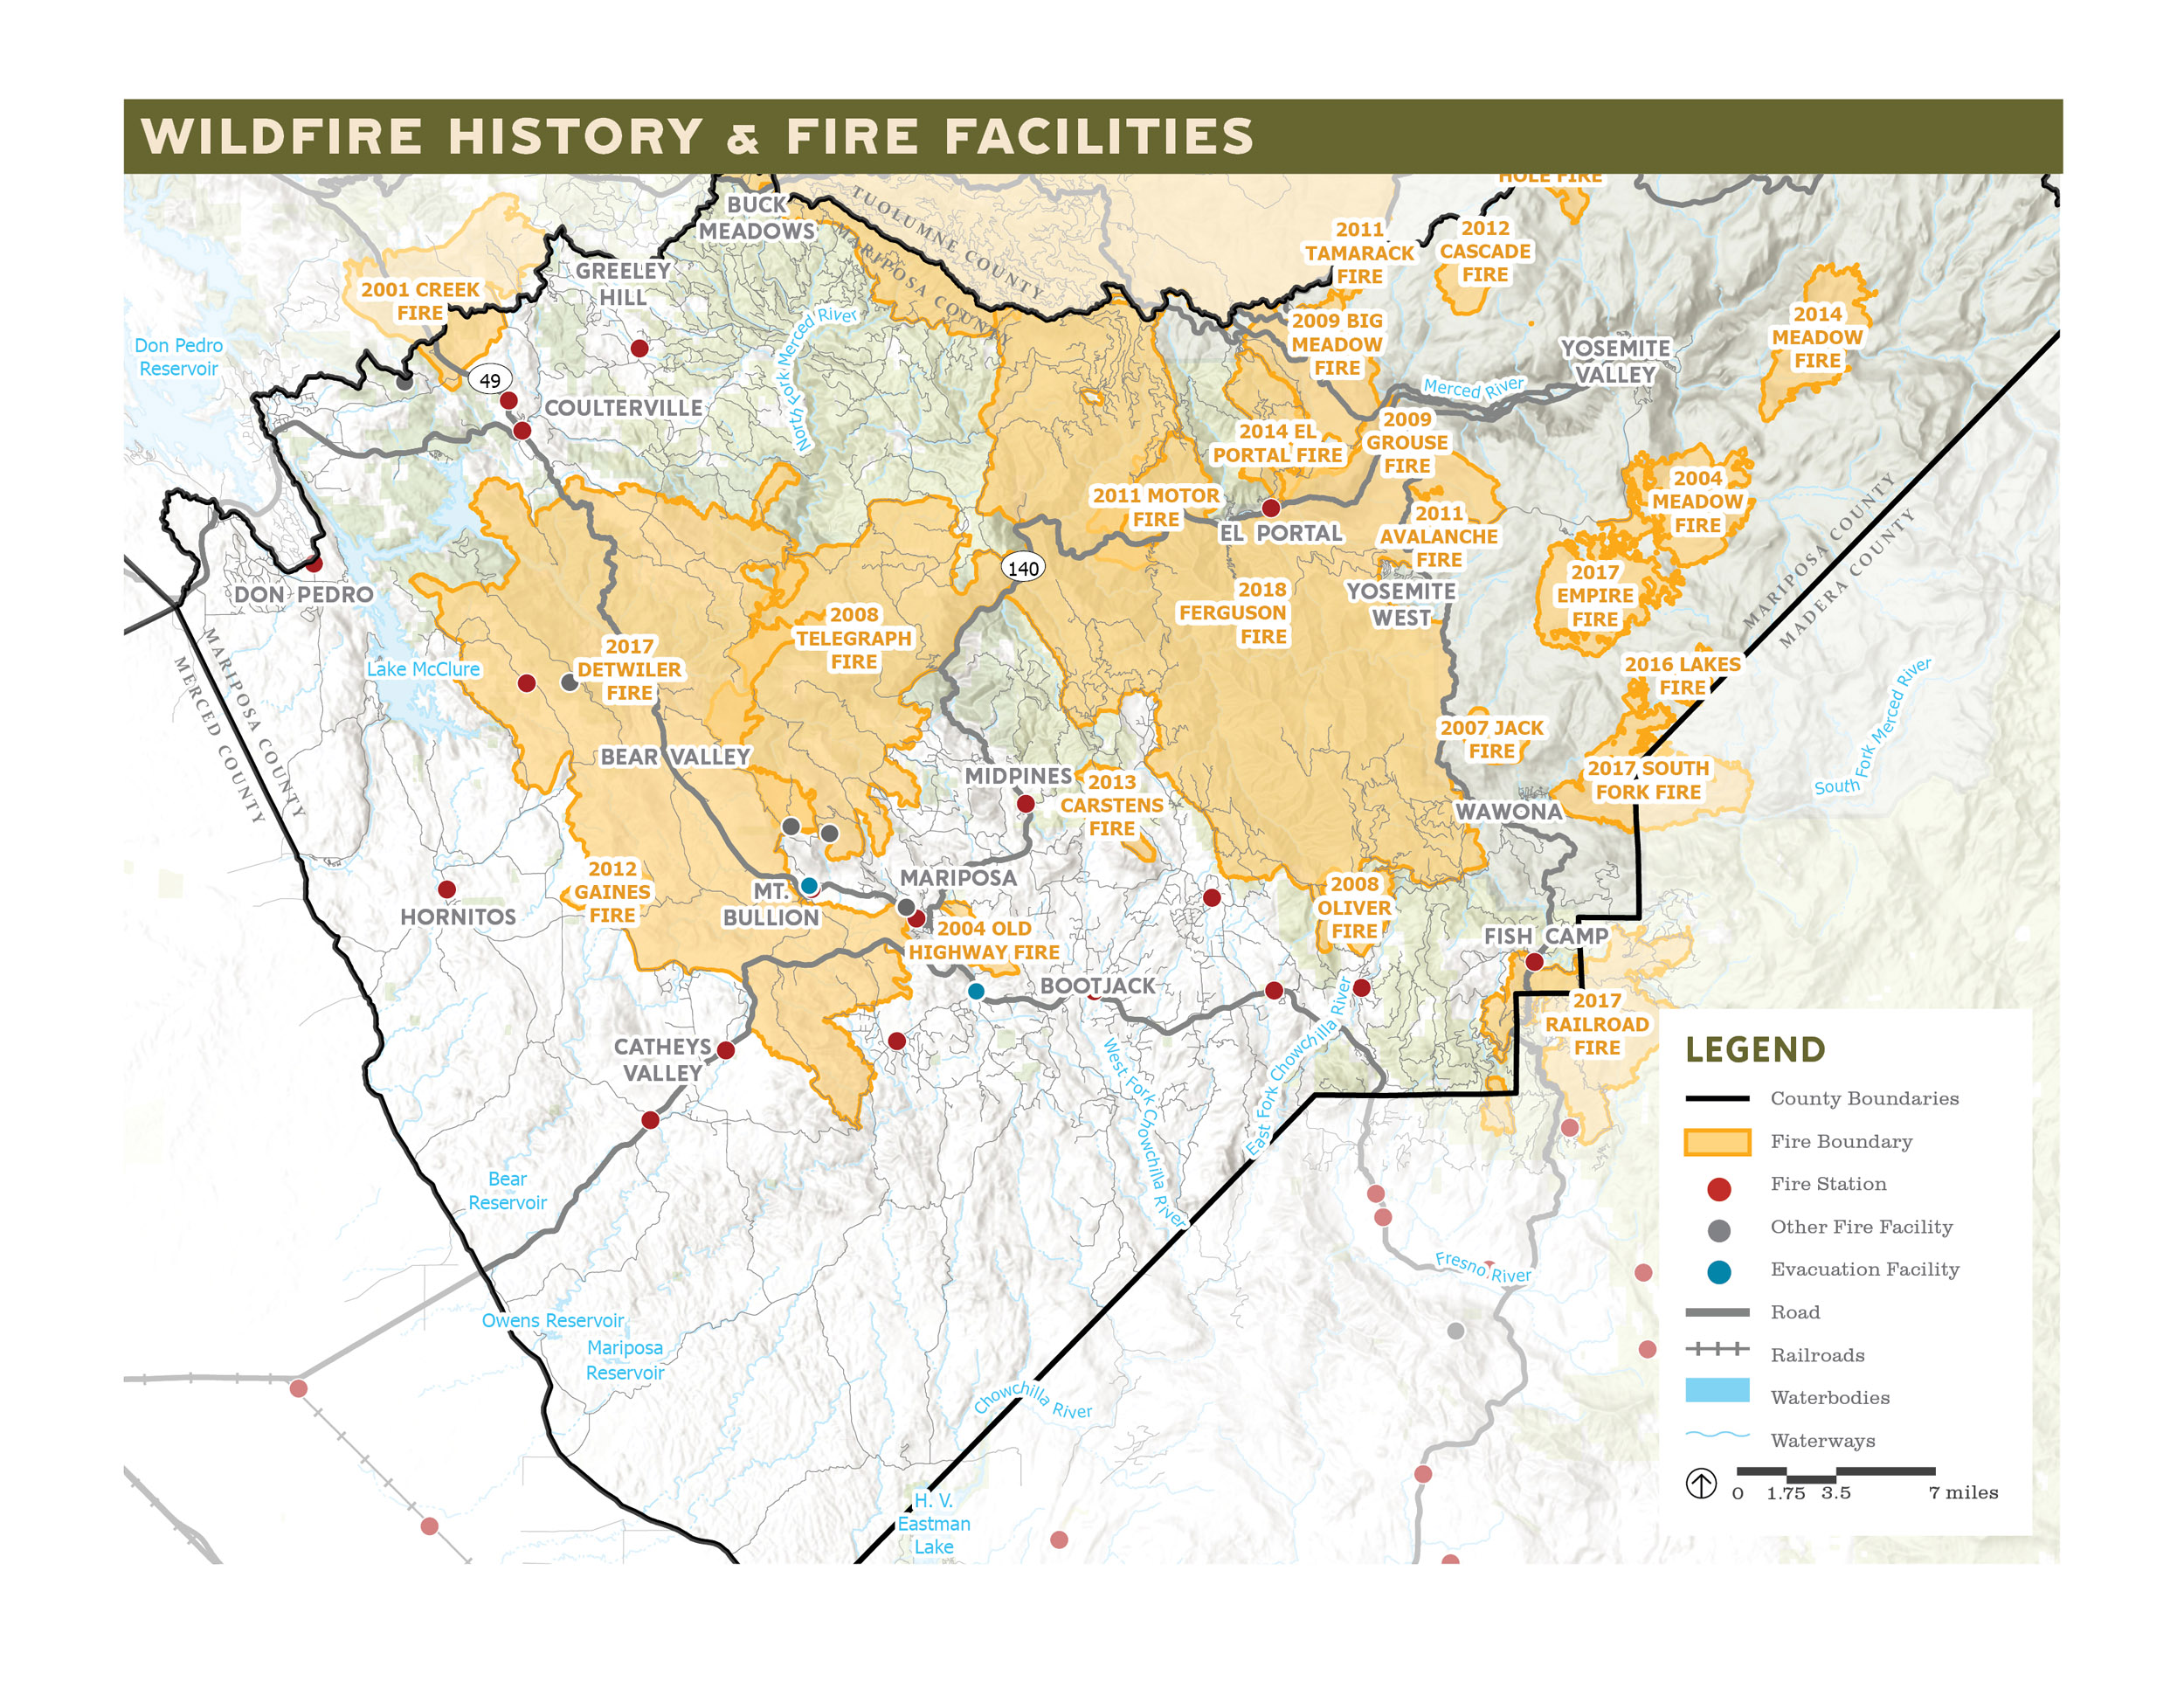 map of mariposa county depicting the county's history of wildfires